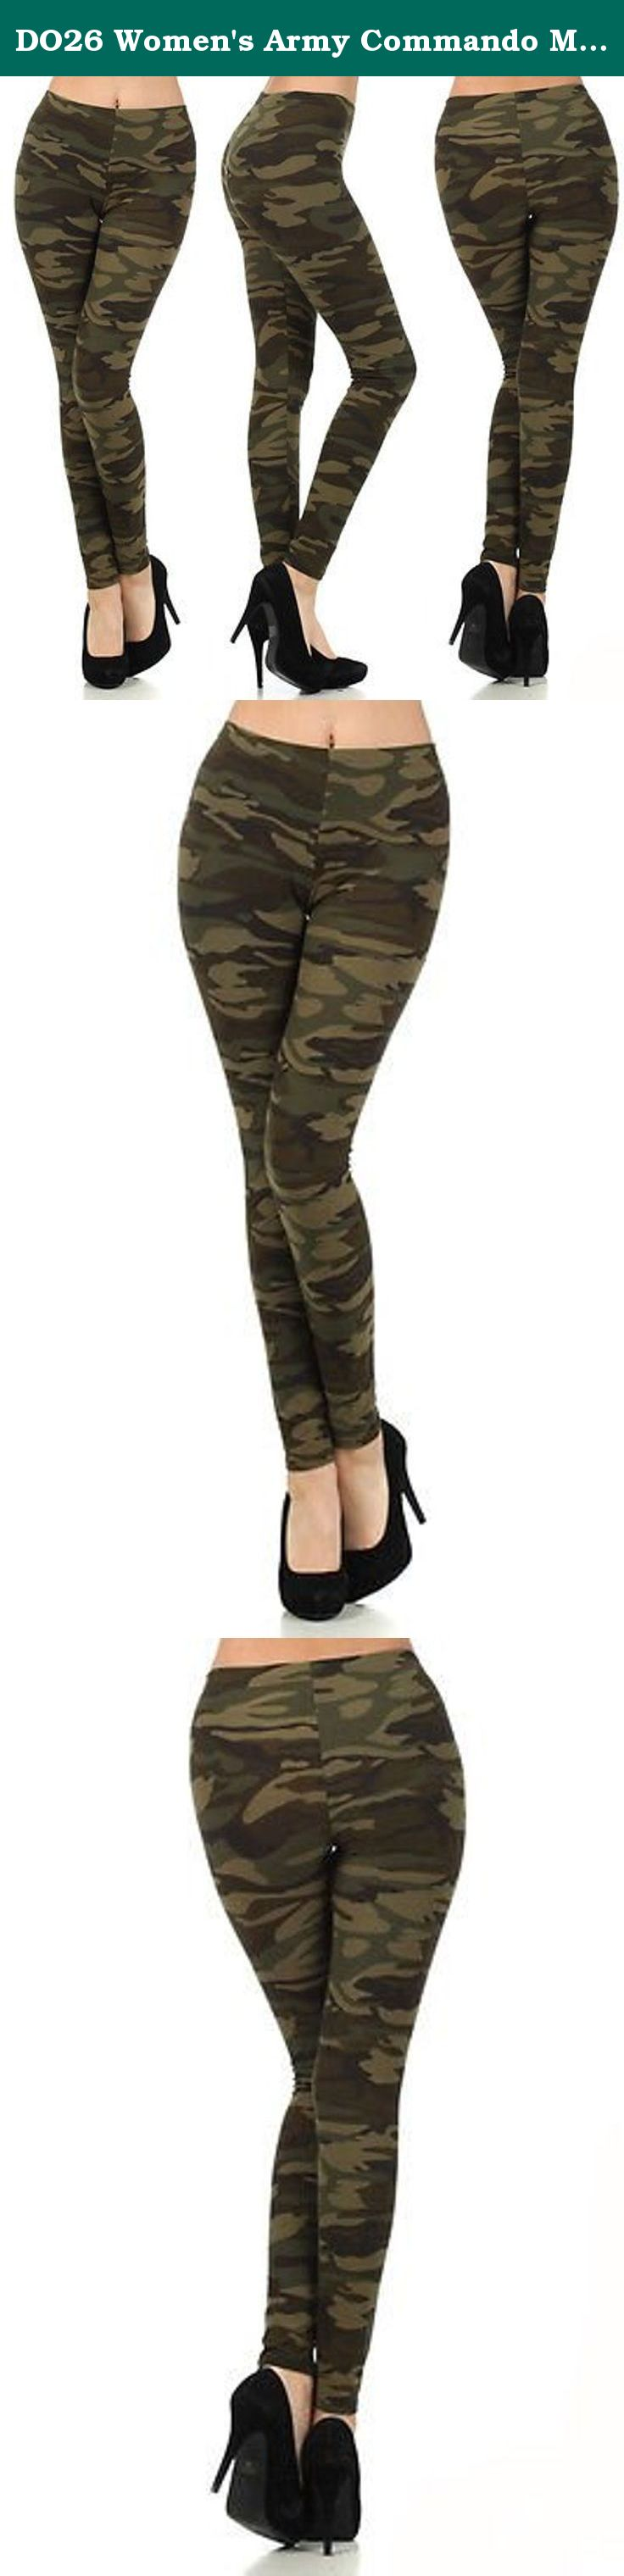 NEW Women/'s Army Commando Military Print Camouflage Jeggings Leggings ONE SIZE